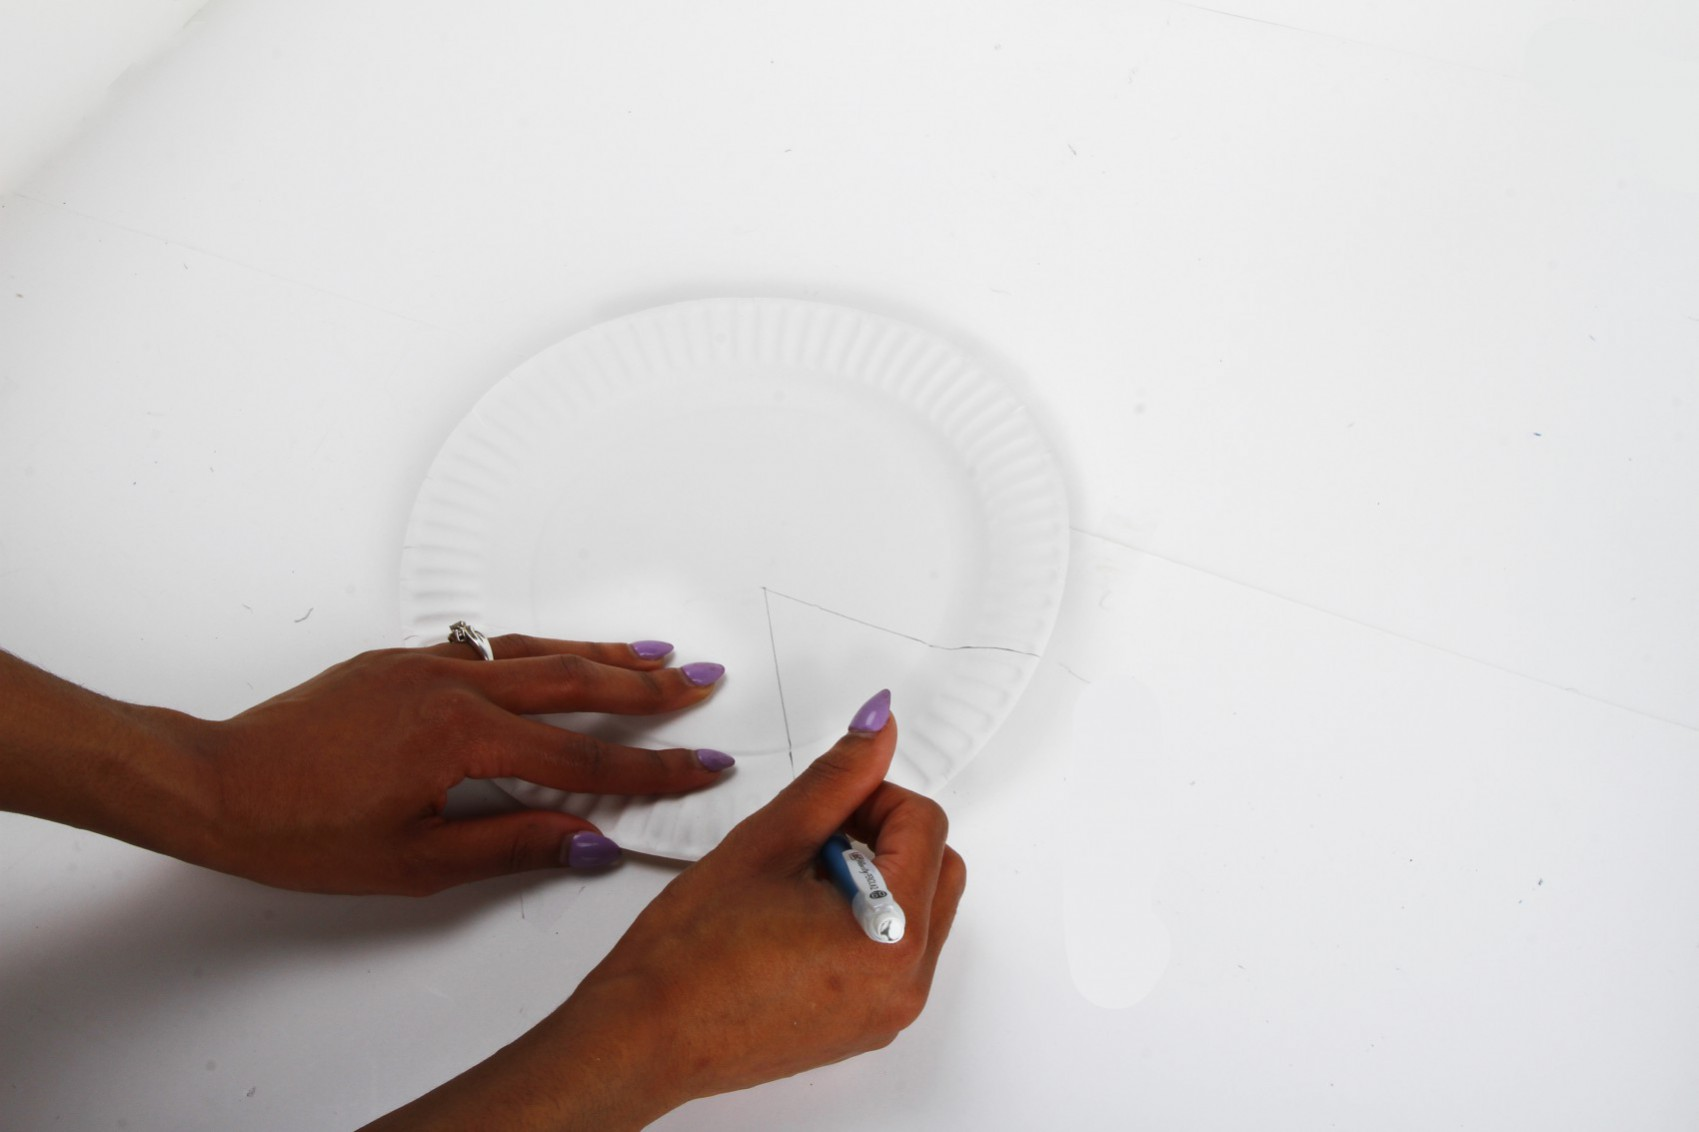 Drawing on paper plate